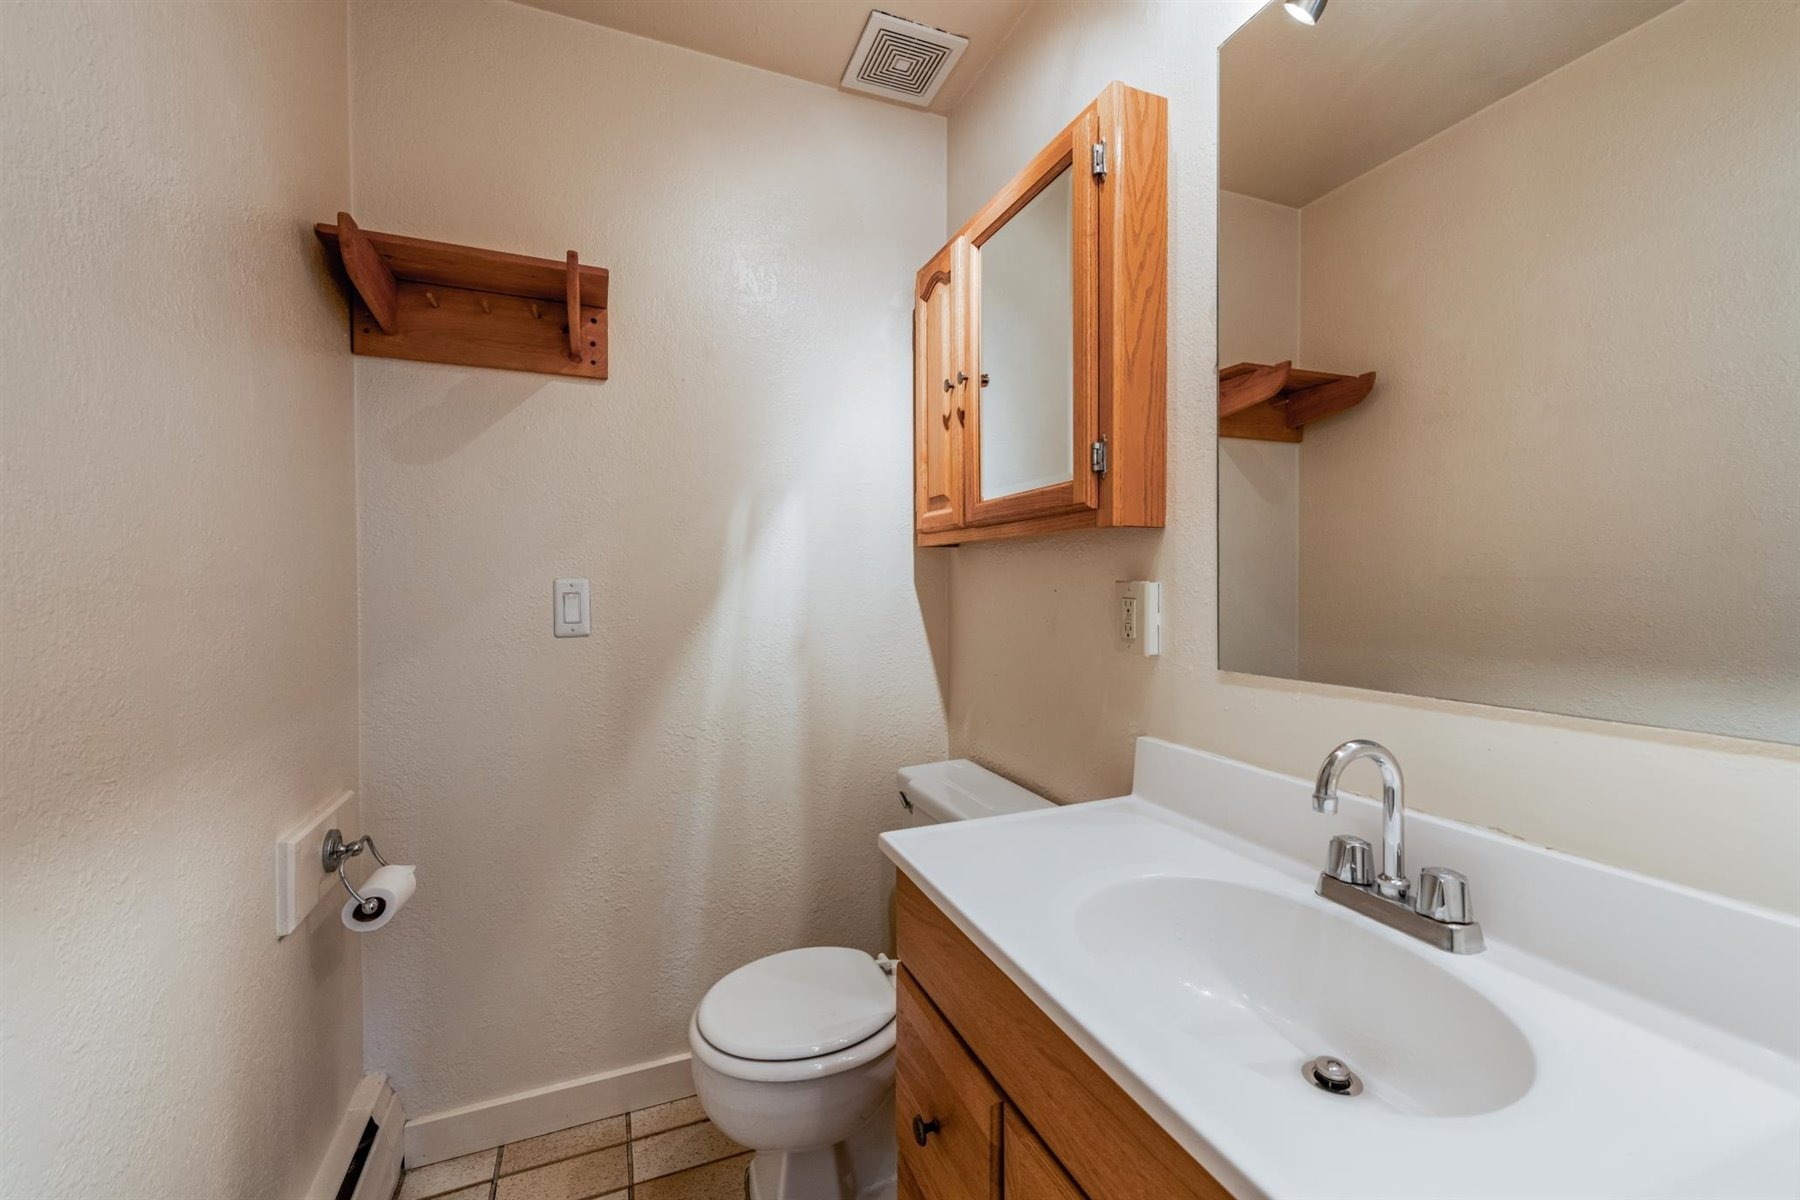 1/2 bathroom connected to bedroom